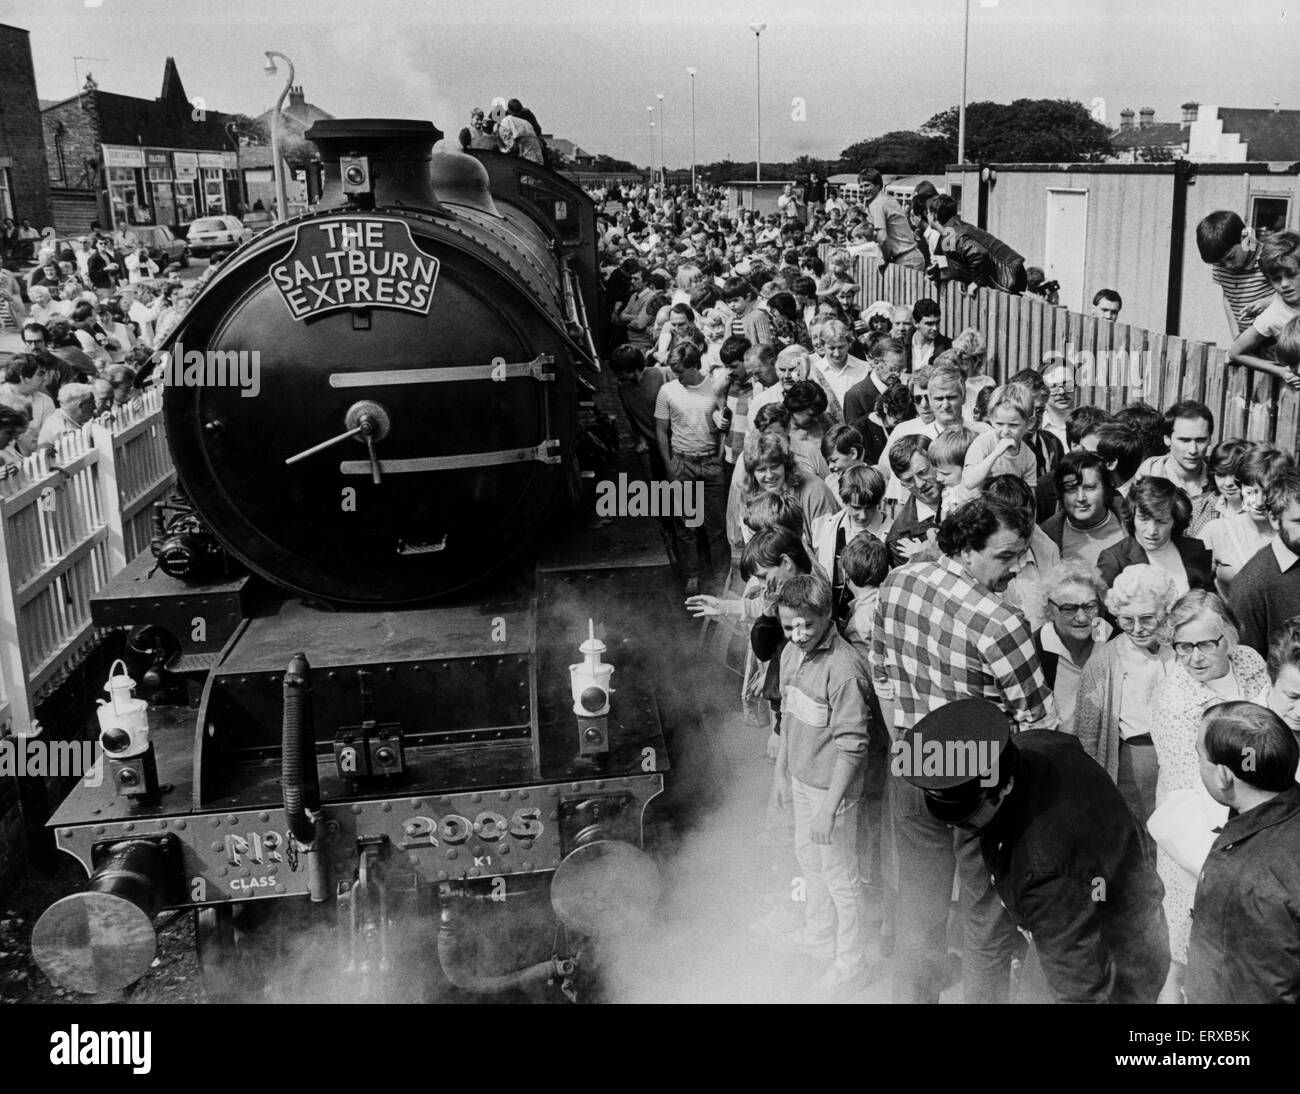 The first stream train in 20 years at Saltburn station. 17th August 1981. - Stock Image